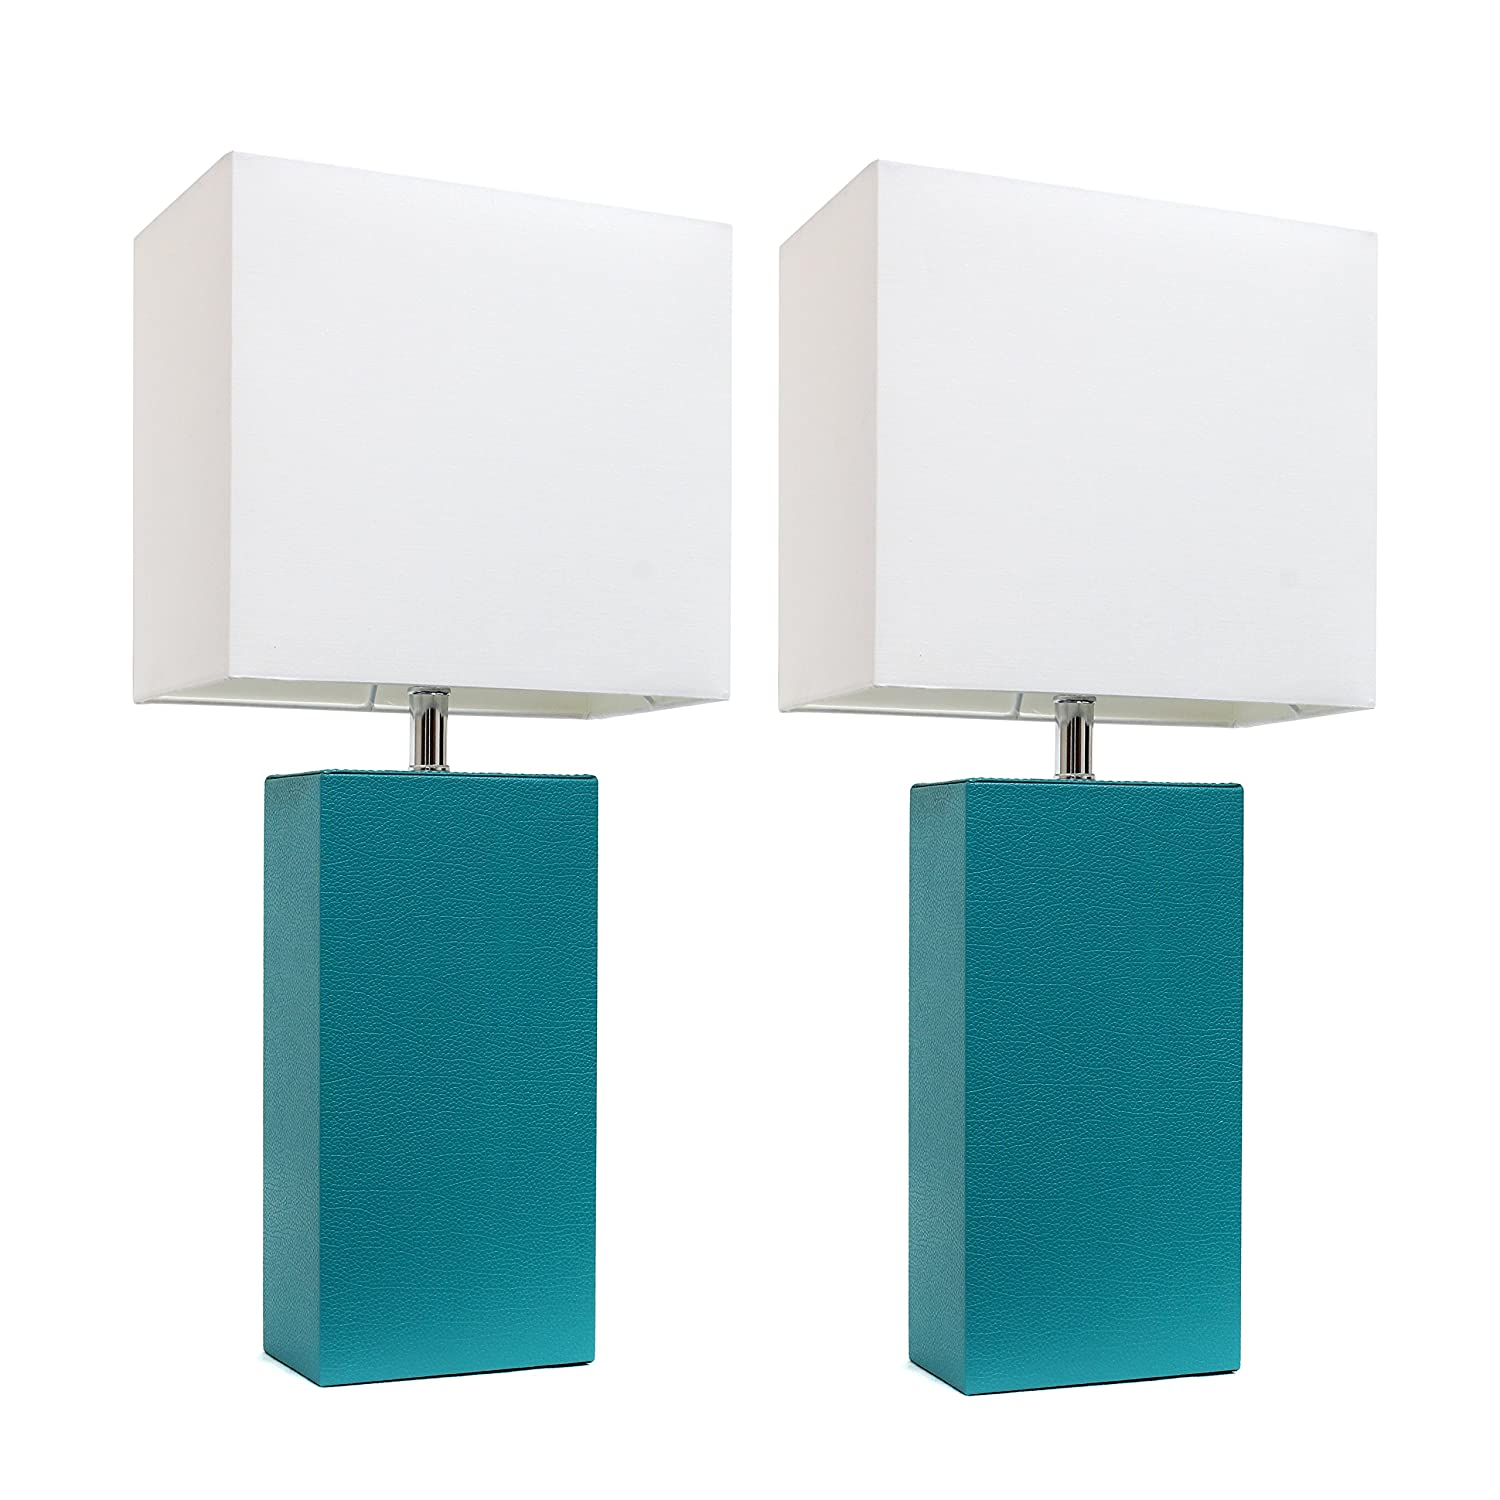 "Elegant Designs LC2000-TEL-2PK 2 Pack Modern Leather Table Lamps with White Fabric Shades, 3.9"", Teal"